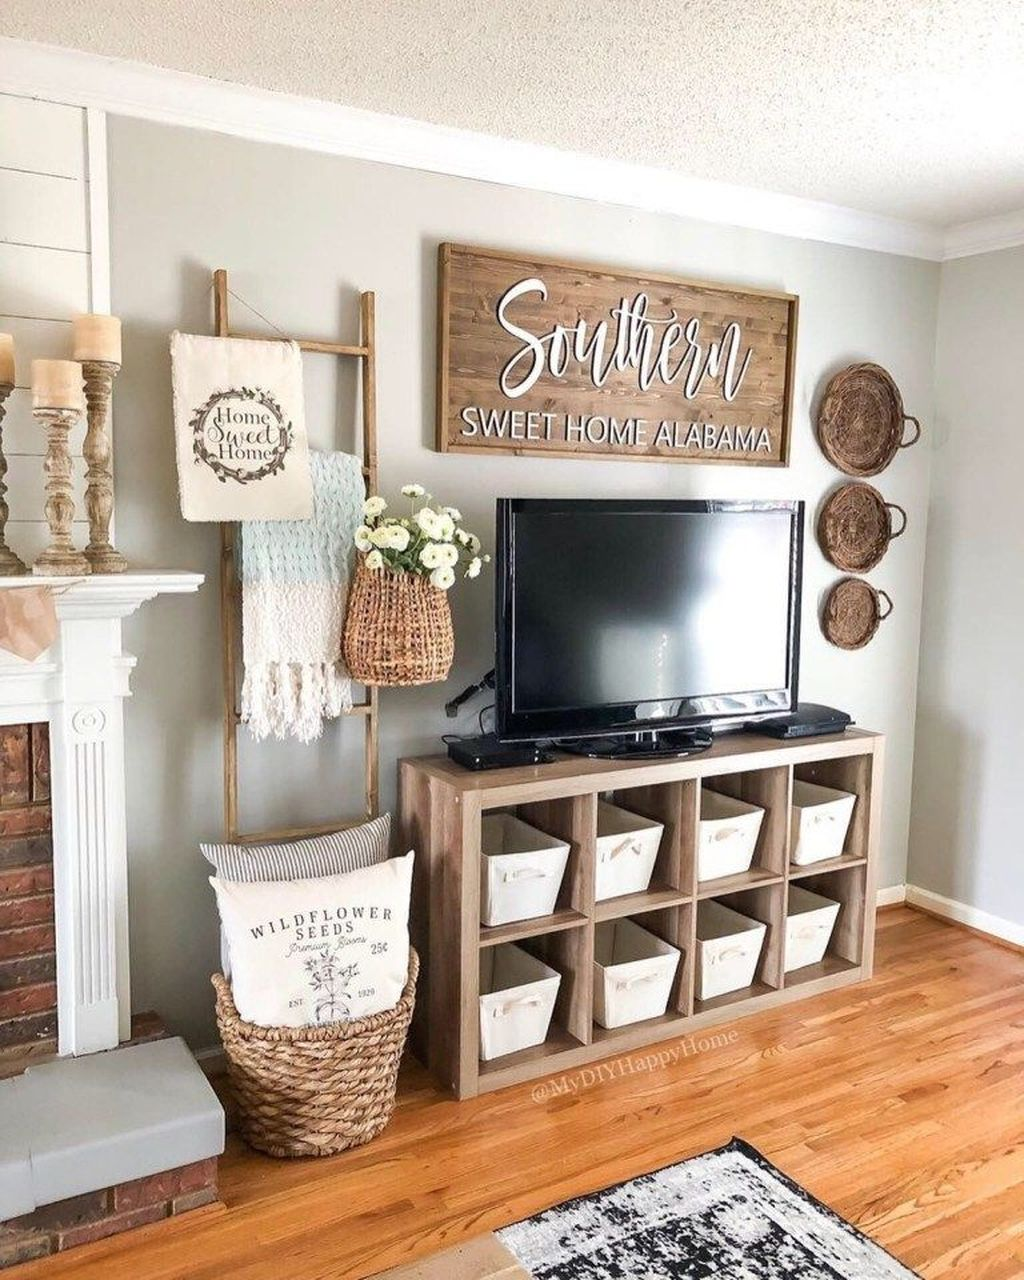 The Best Ideas To Decorate Interior Design With Farmhouse Style 31